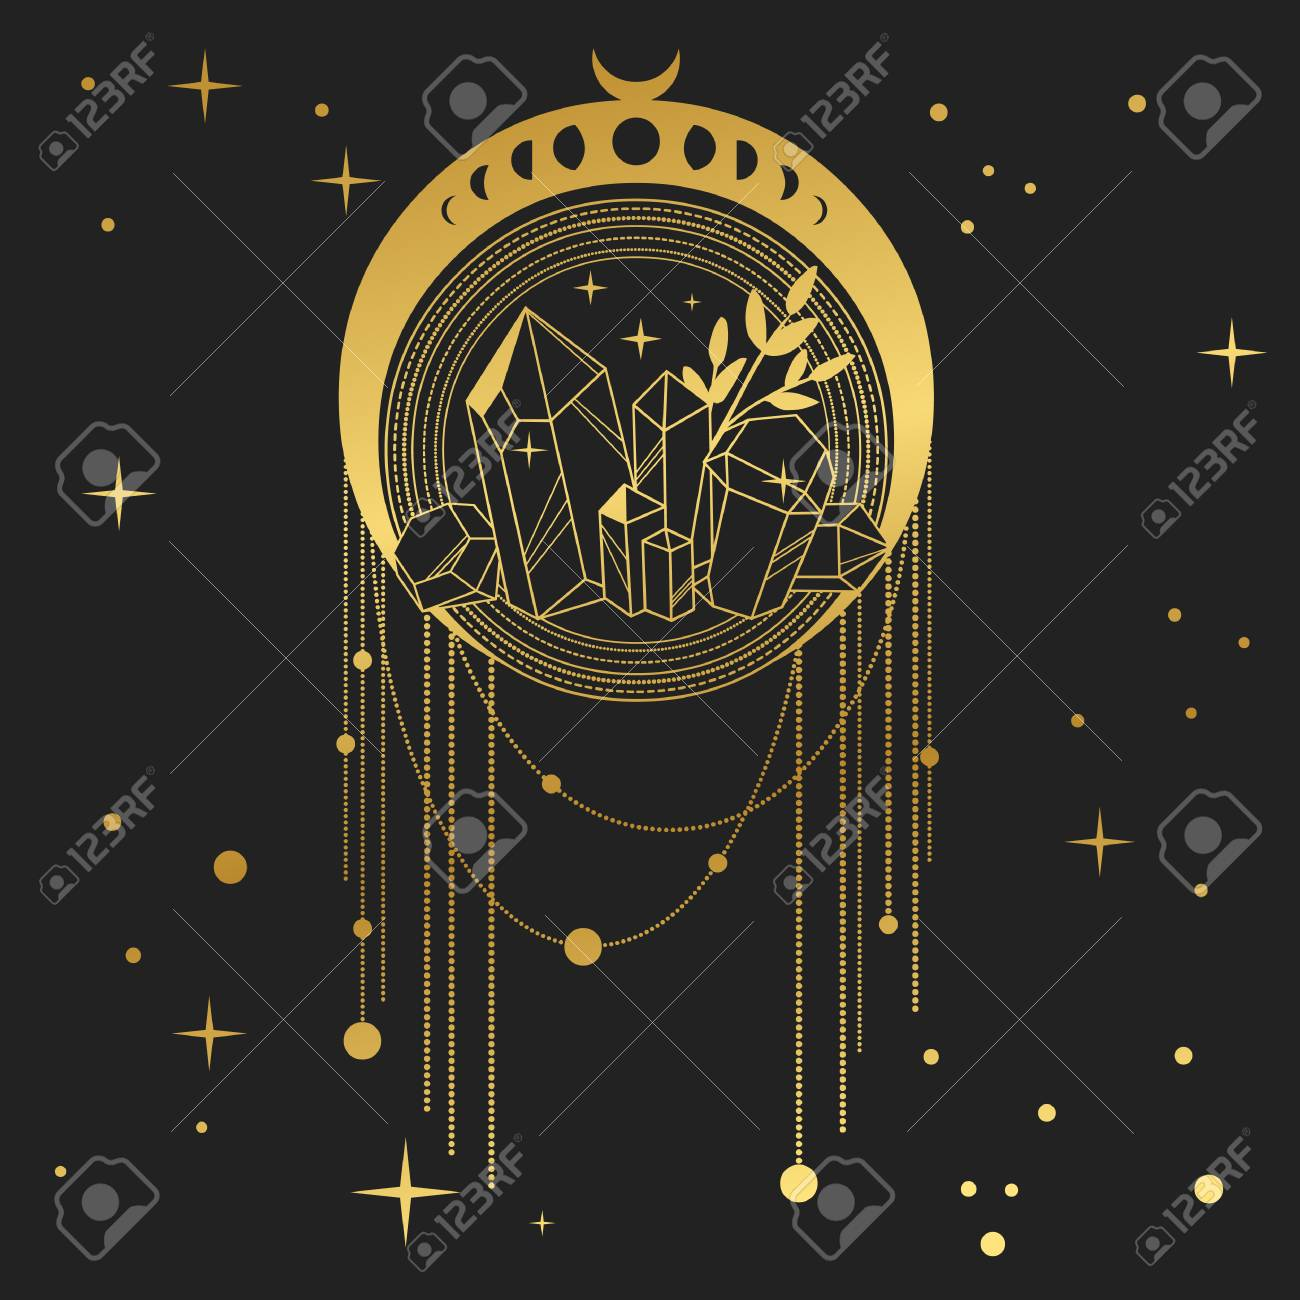 Dream catcher with crystals and moon phases. Vector hand drawn illustration in boho style - 116738550